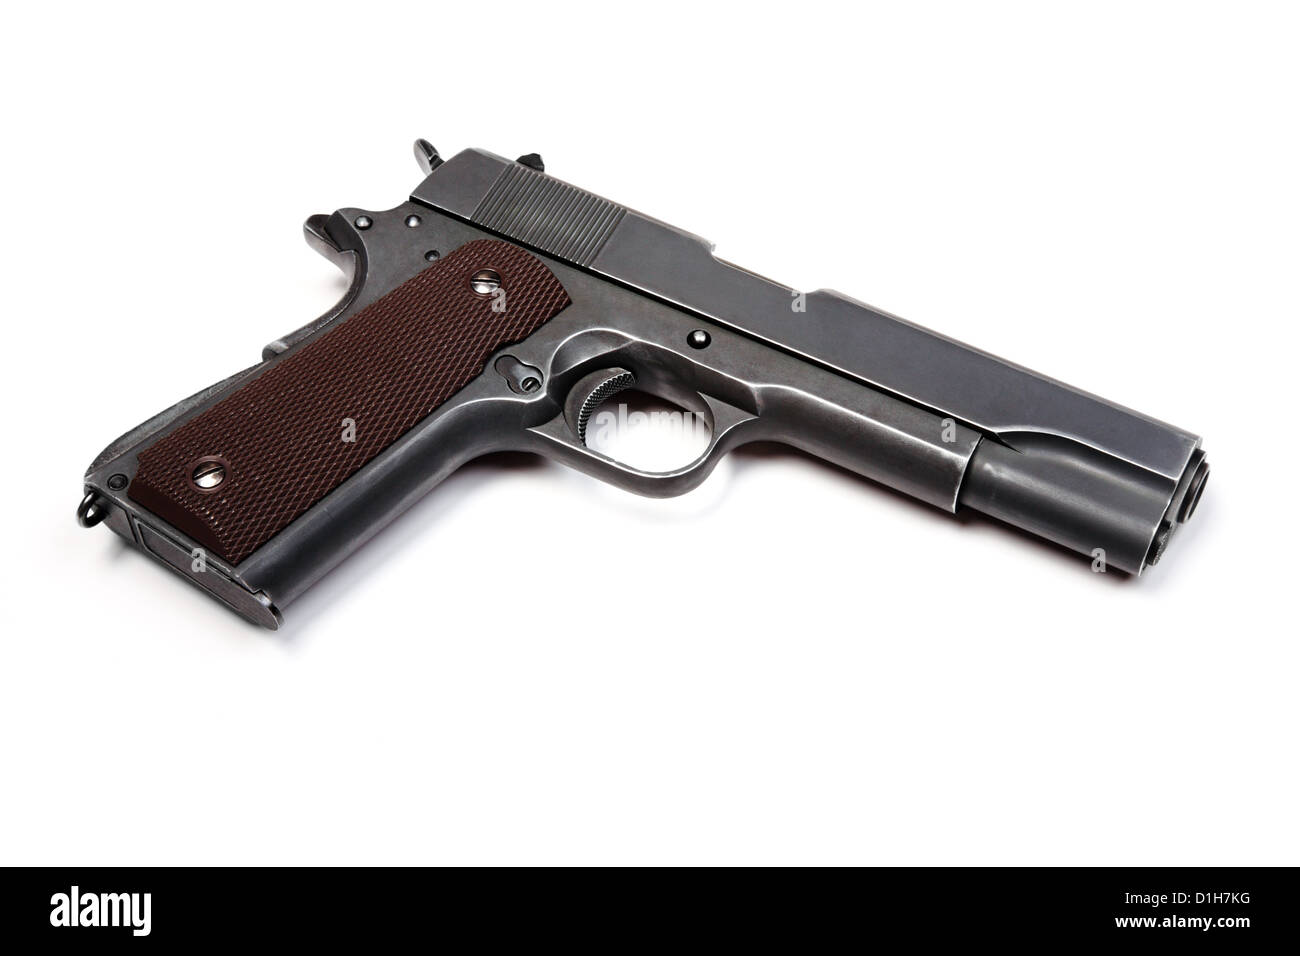 U.S. Army Colt 1911A1 pistol isolated on a white background. Studio shot. - Stock Image